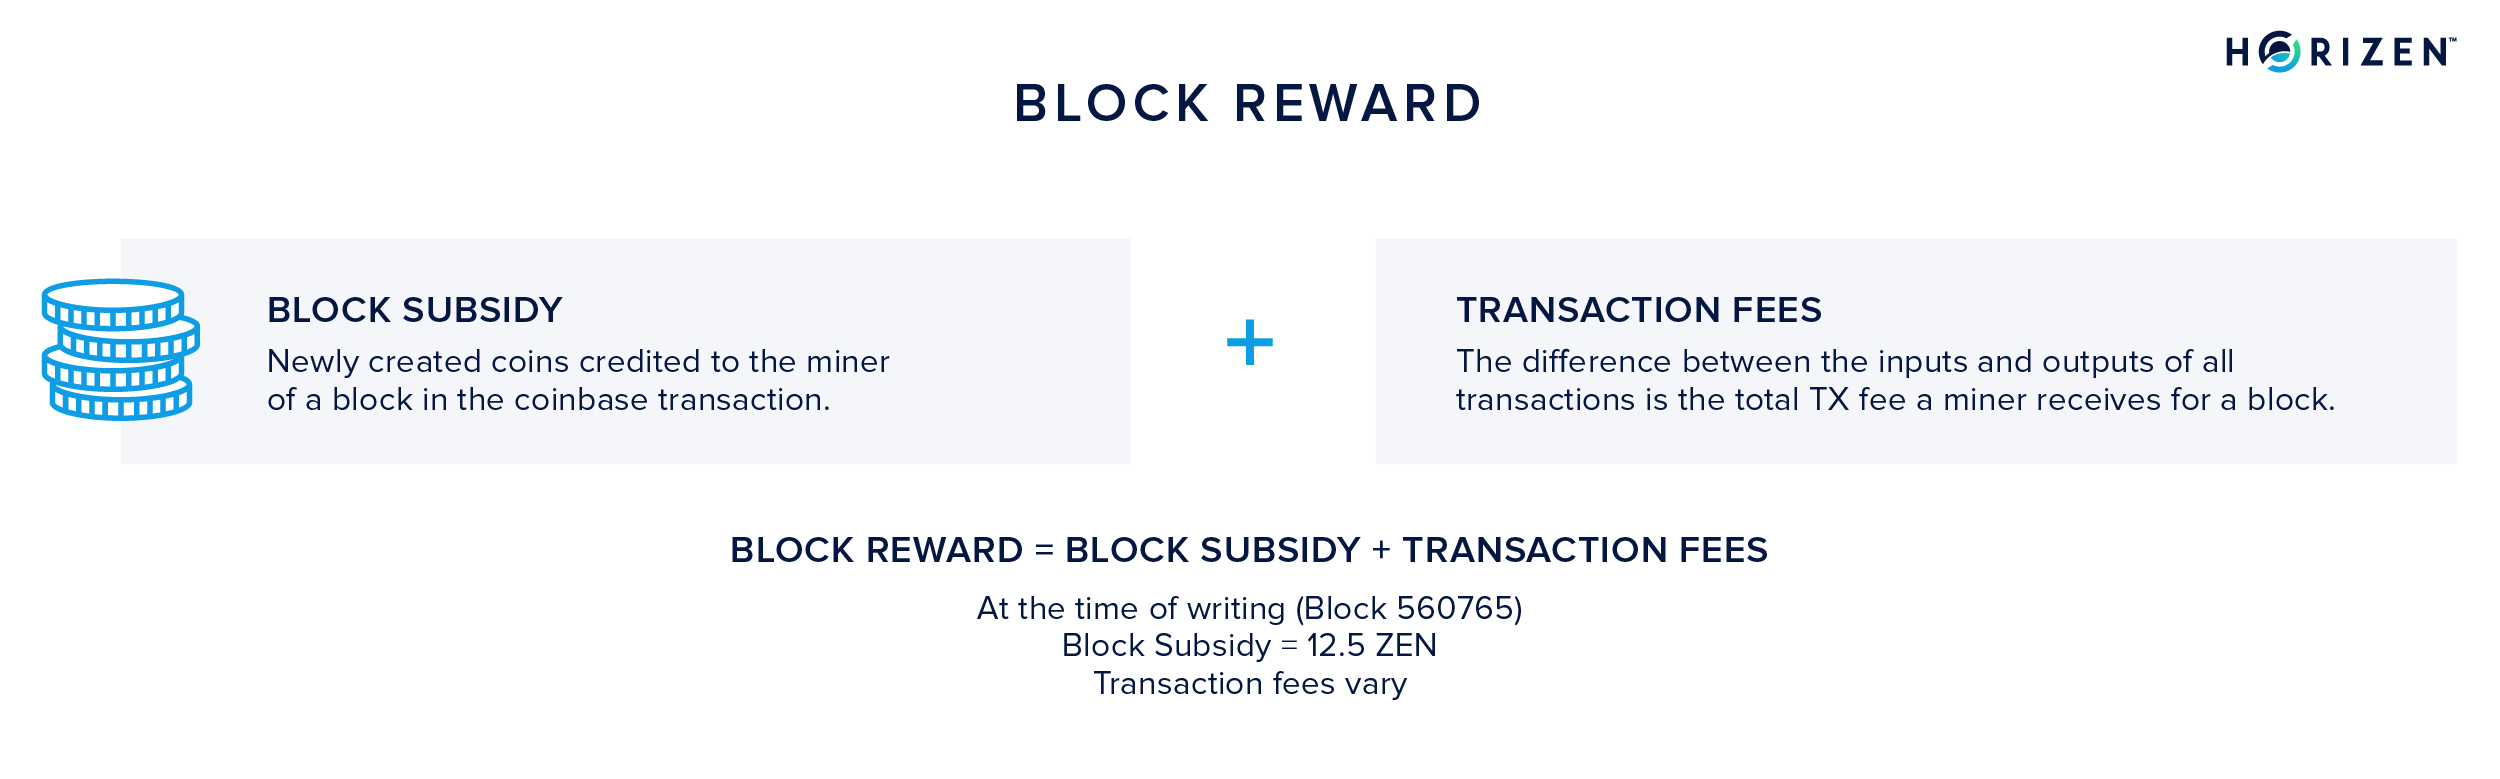 Block Reward: The sum of block subsidy and transaction fees